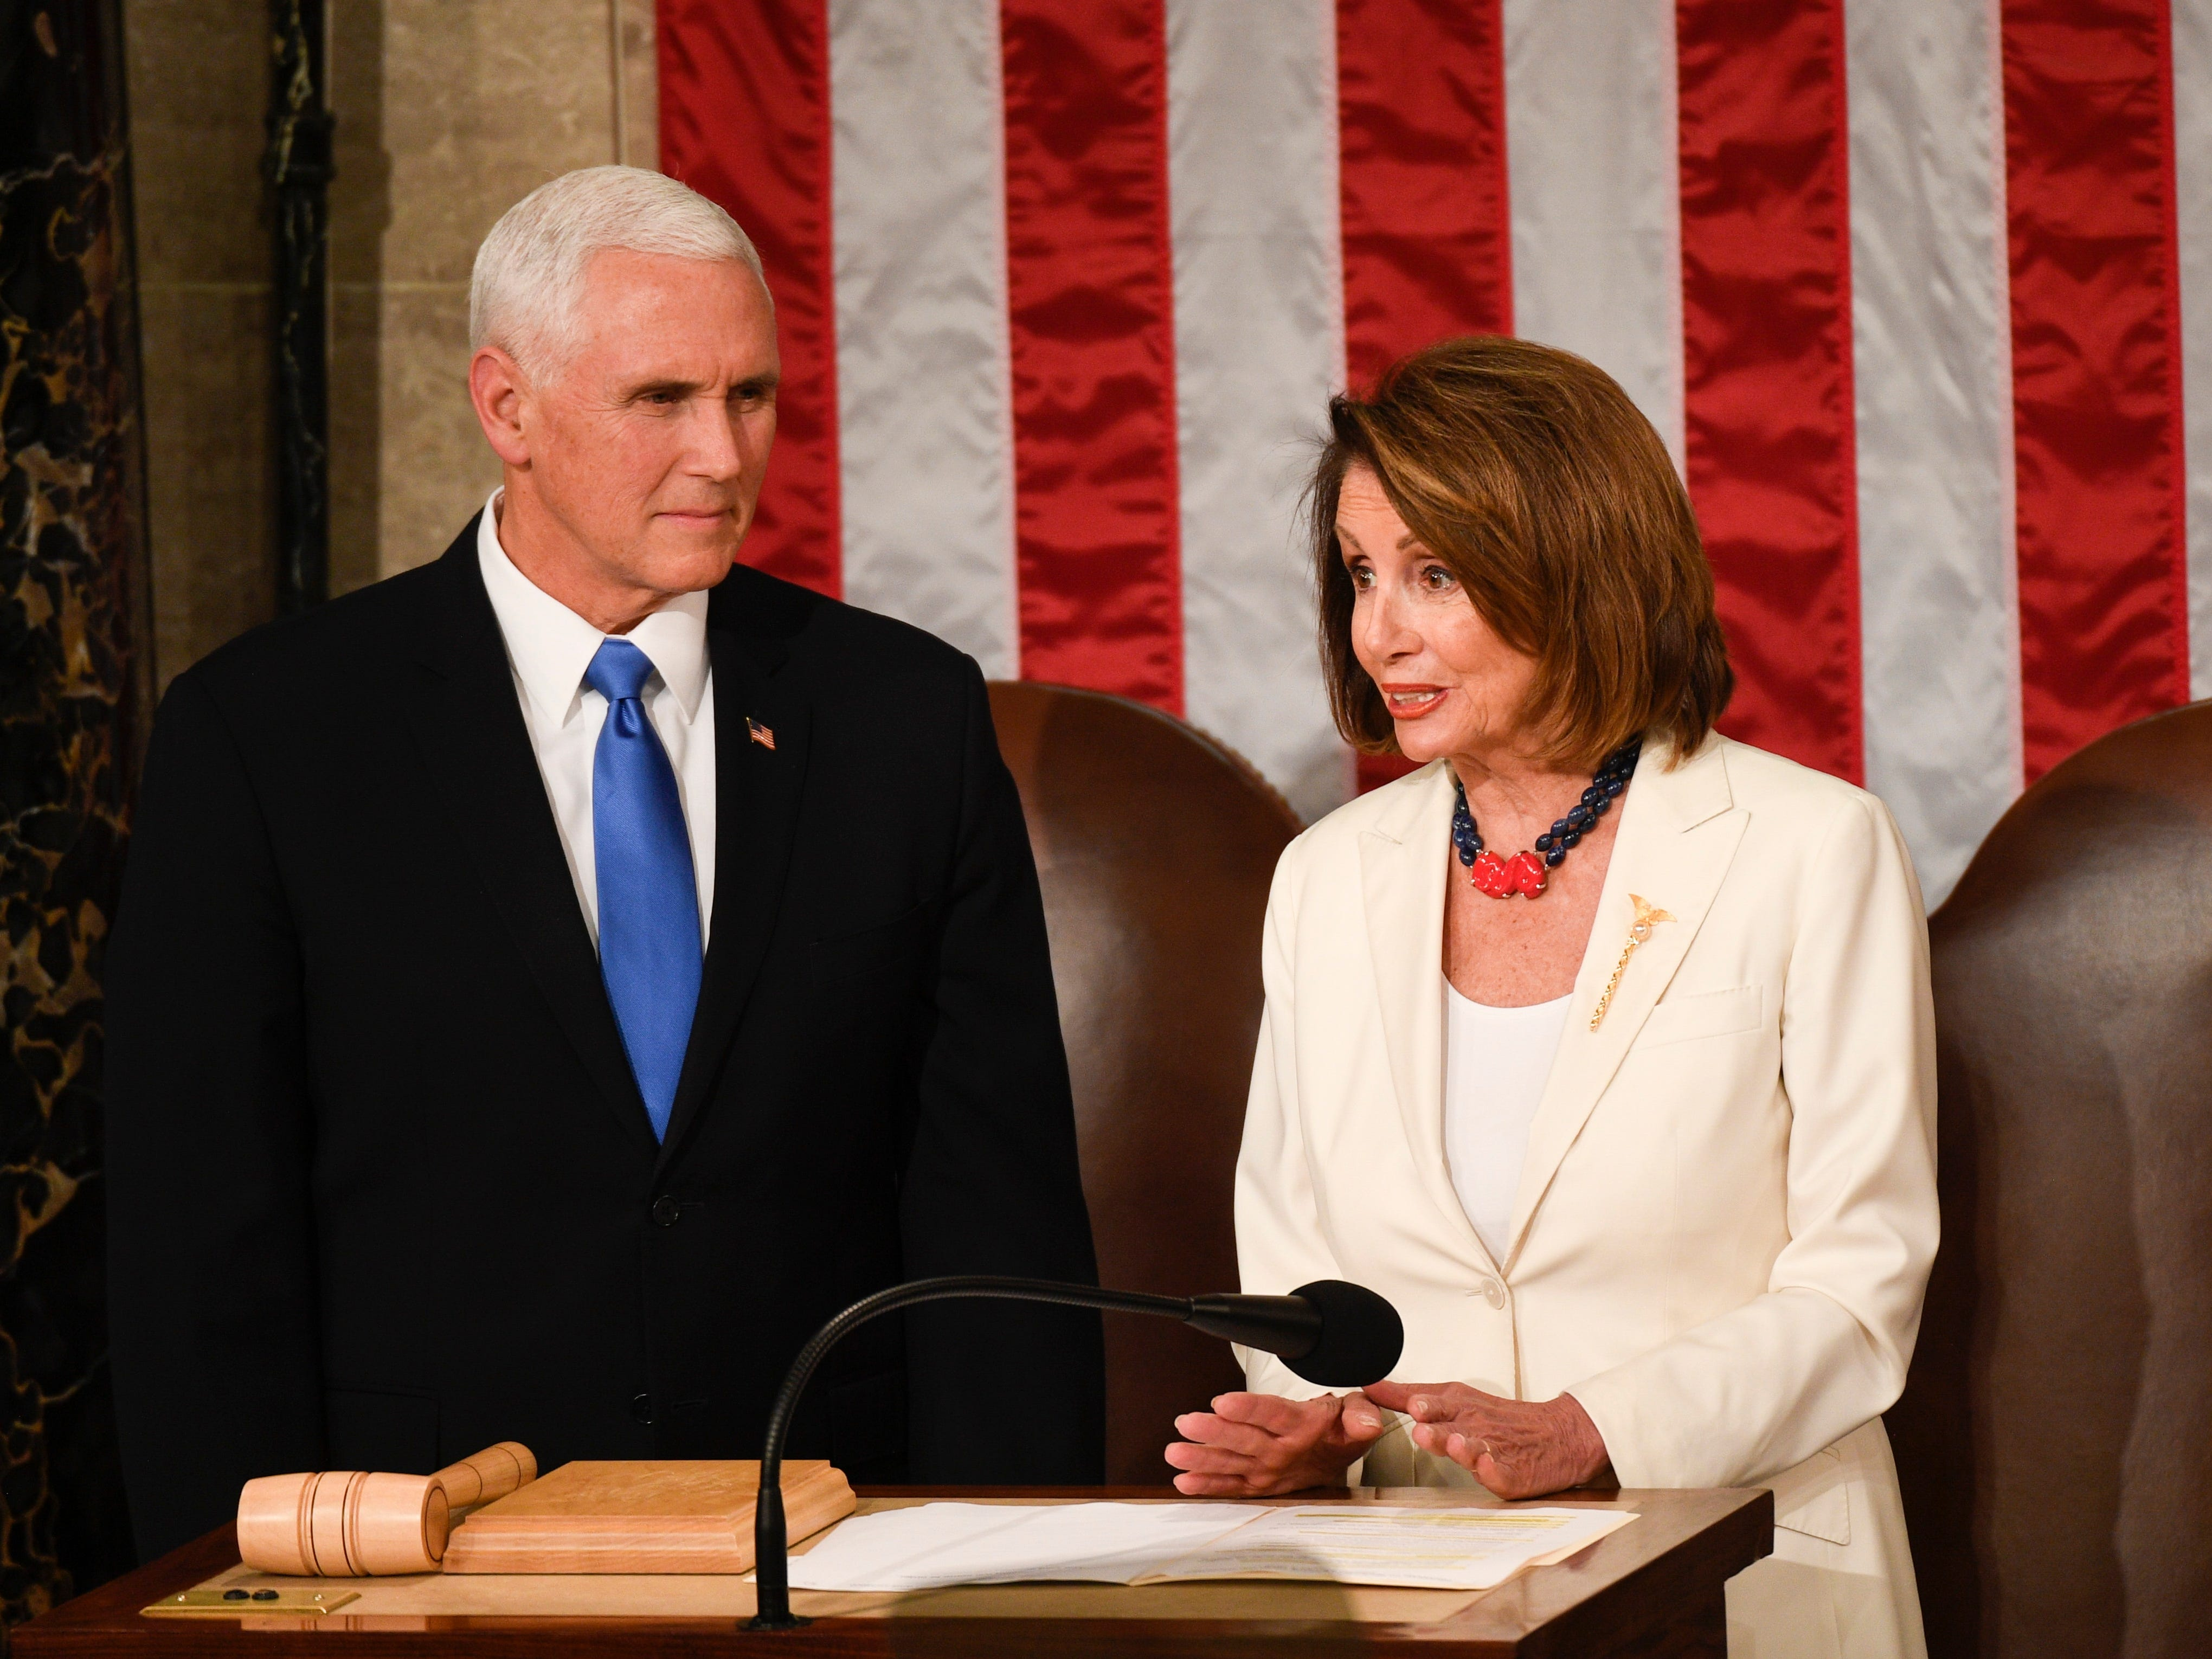 Vice President Mike Pence and Speaker of the House Nancy Pelosi (D-Calif.) talk before President Donald Trump delivers the State of the Union address.